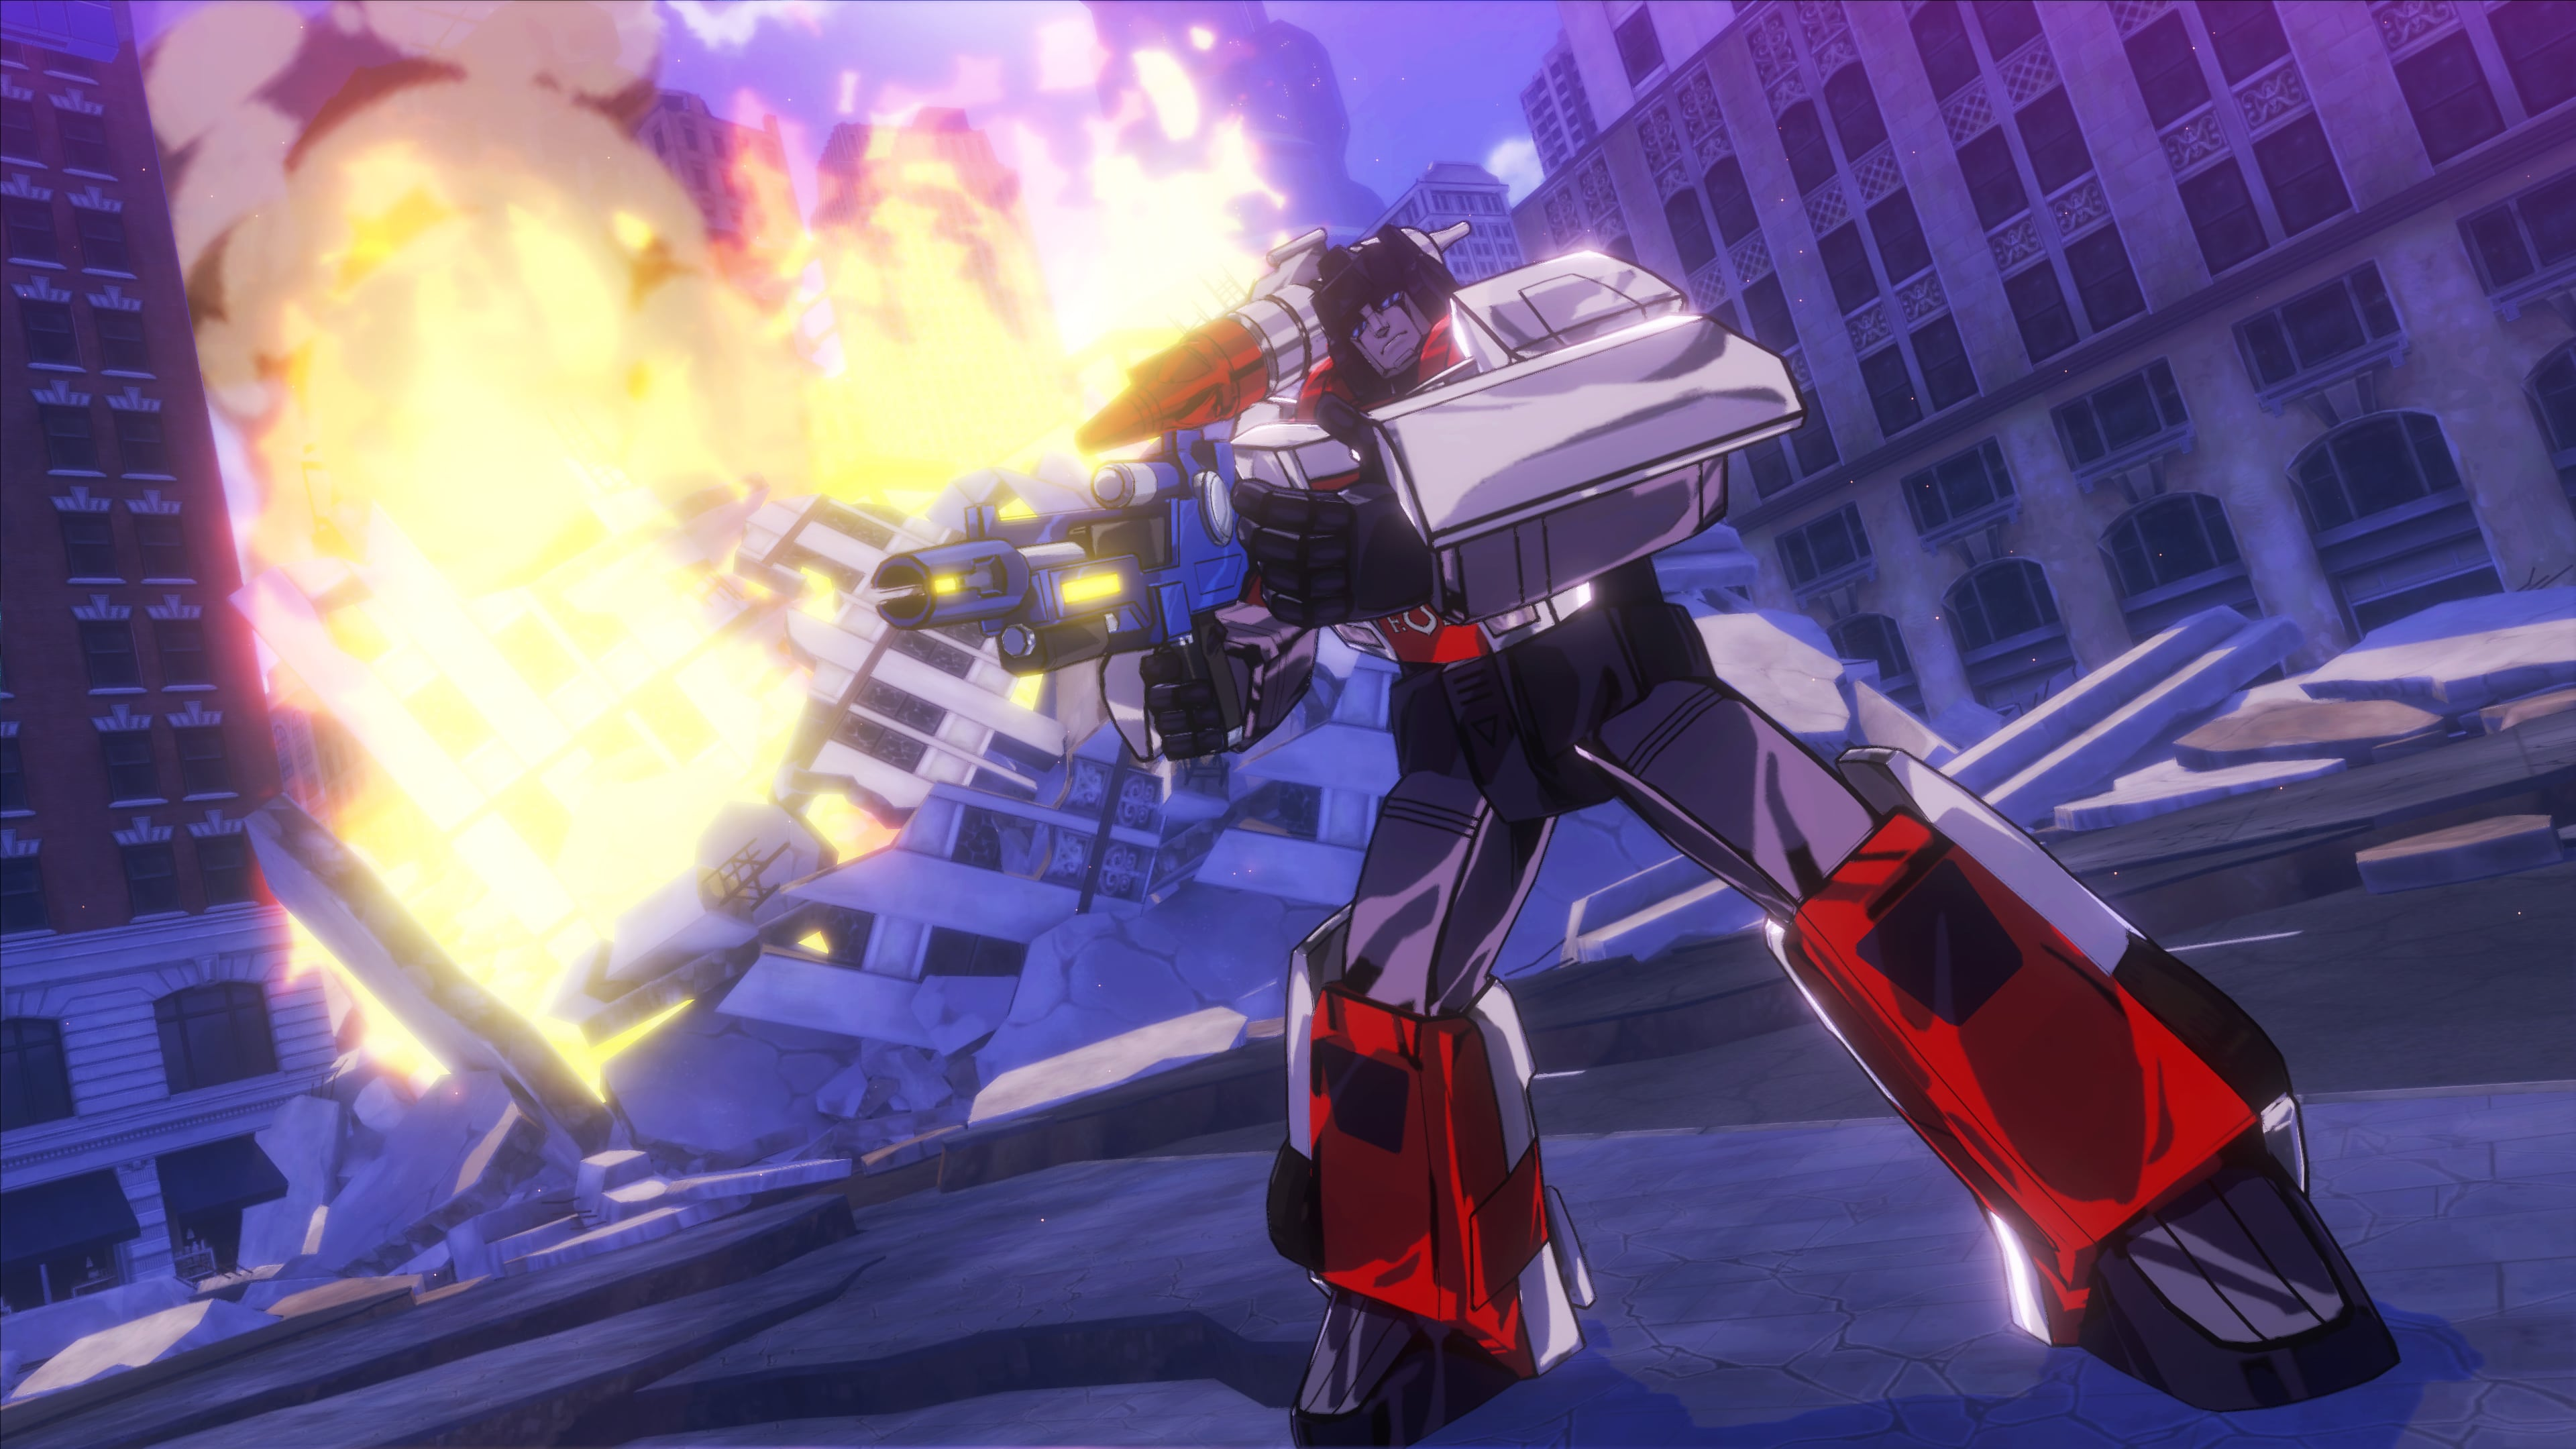 TransformersDevastation_DLCScreen7